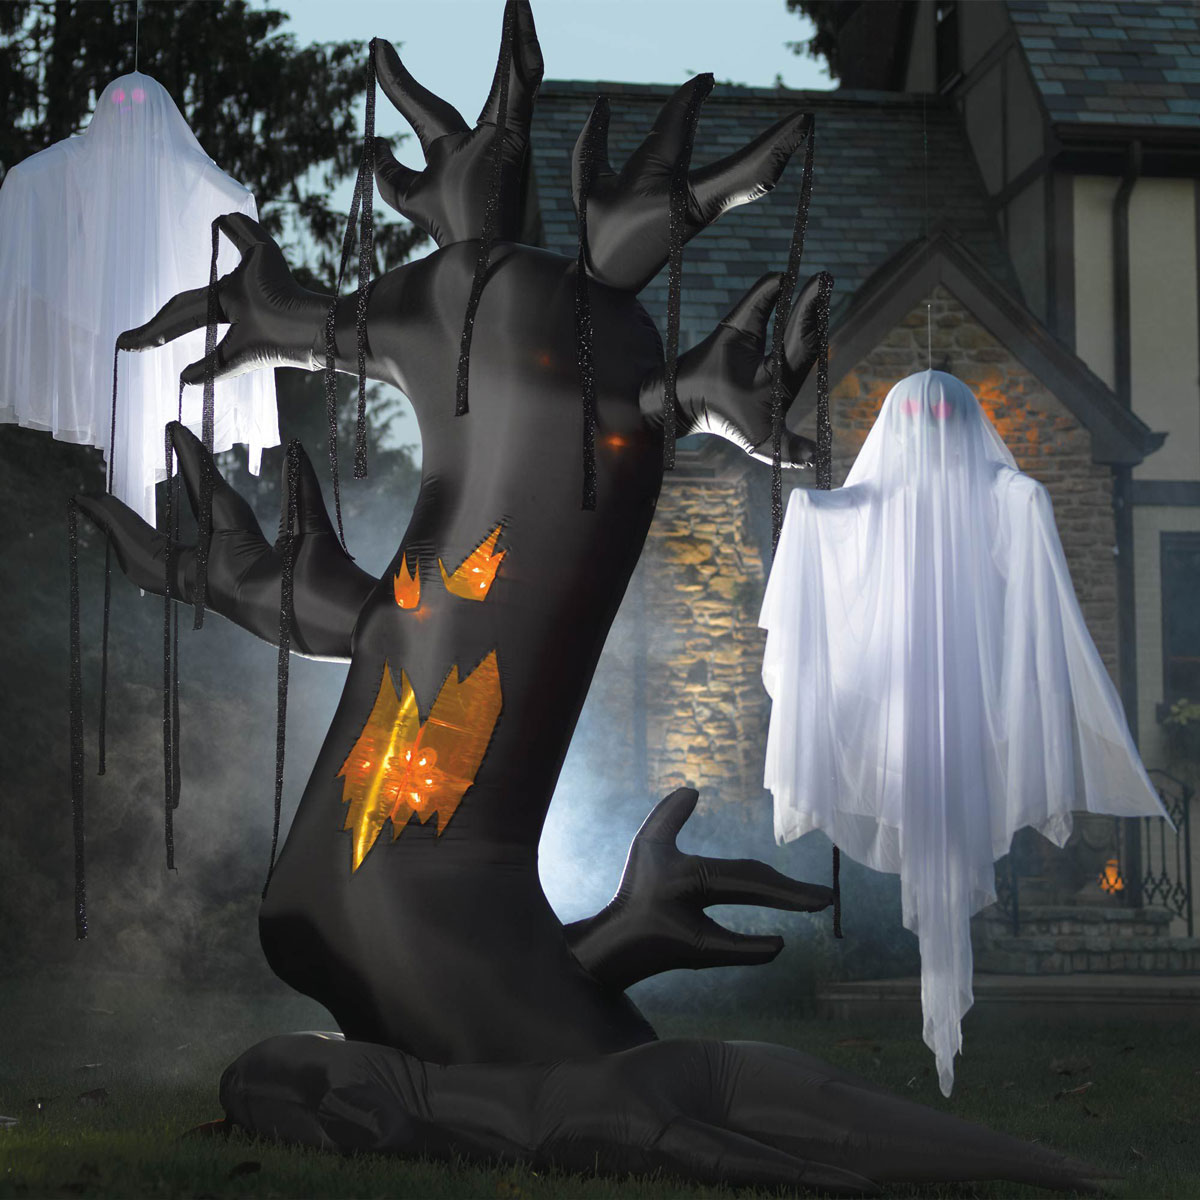 Outdoor inflatable halloween decorations - Giant Inflatable Spooky Tree Giant Inflatable Spooky Tree The Green Head